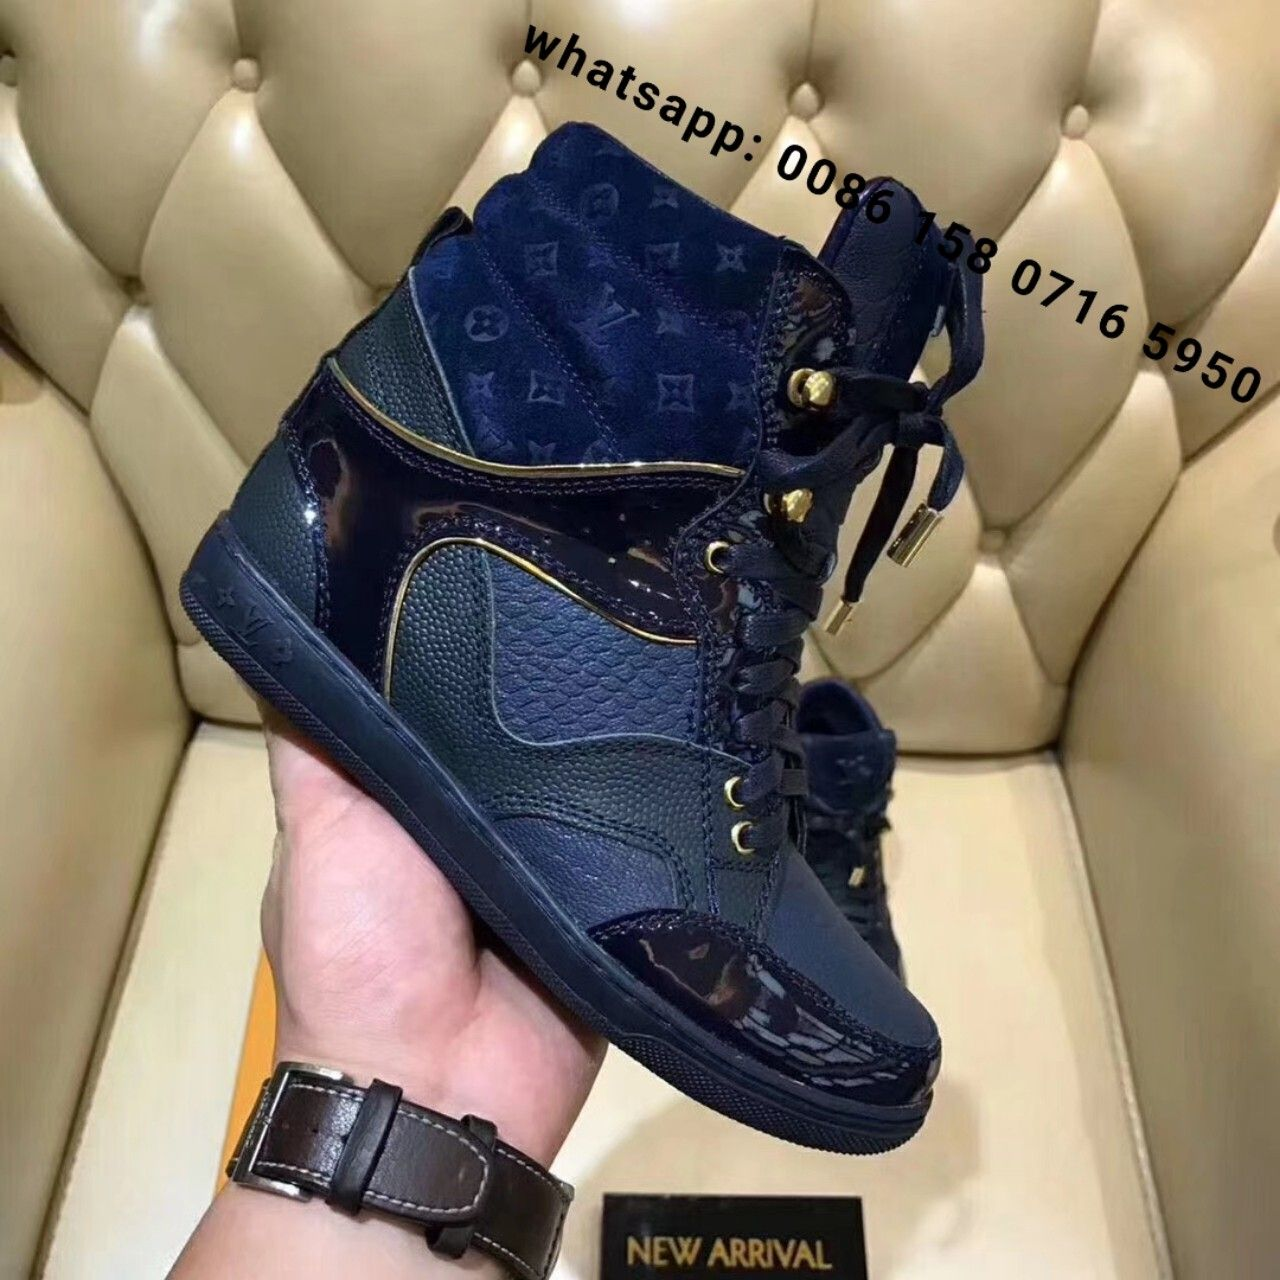 ad85f611cc25 louis vuitton wedge sneakers lv shoes original quality worldwide shipping